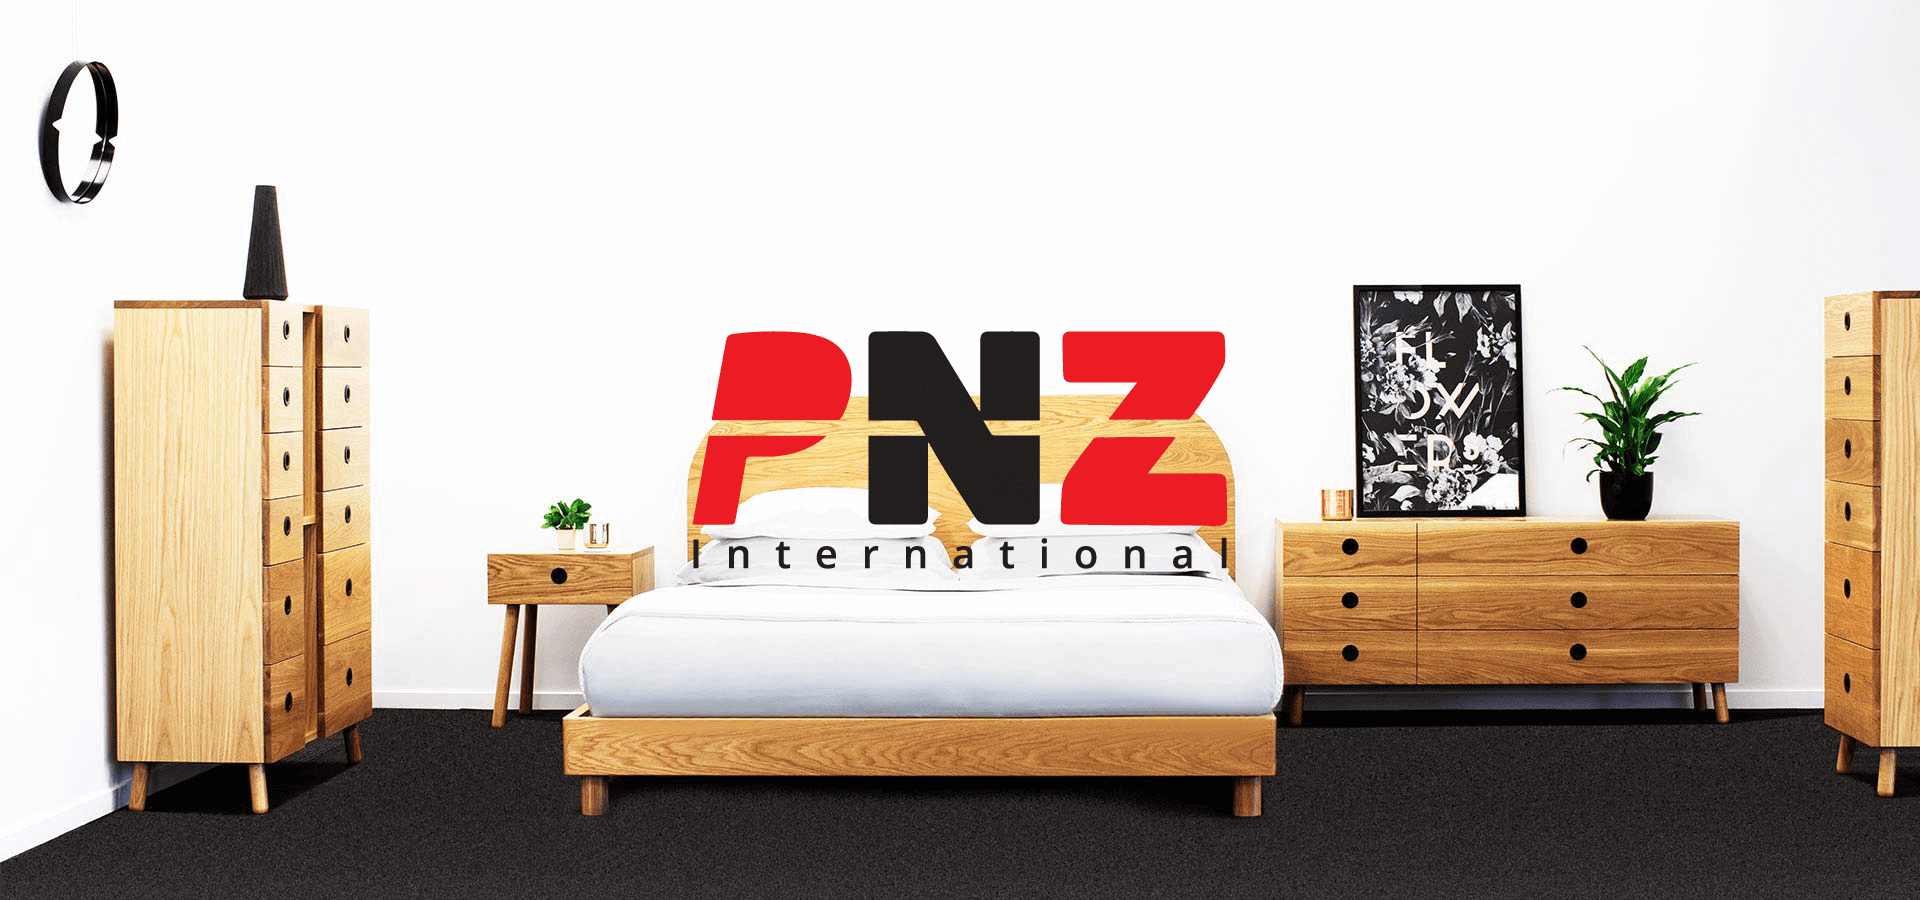 PNZ International